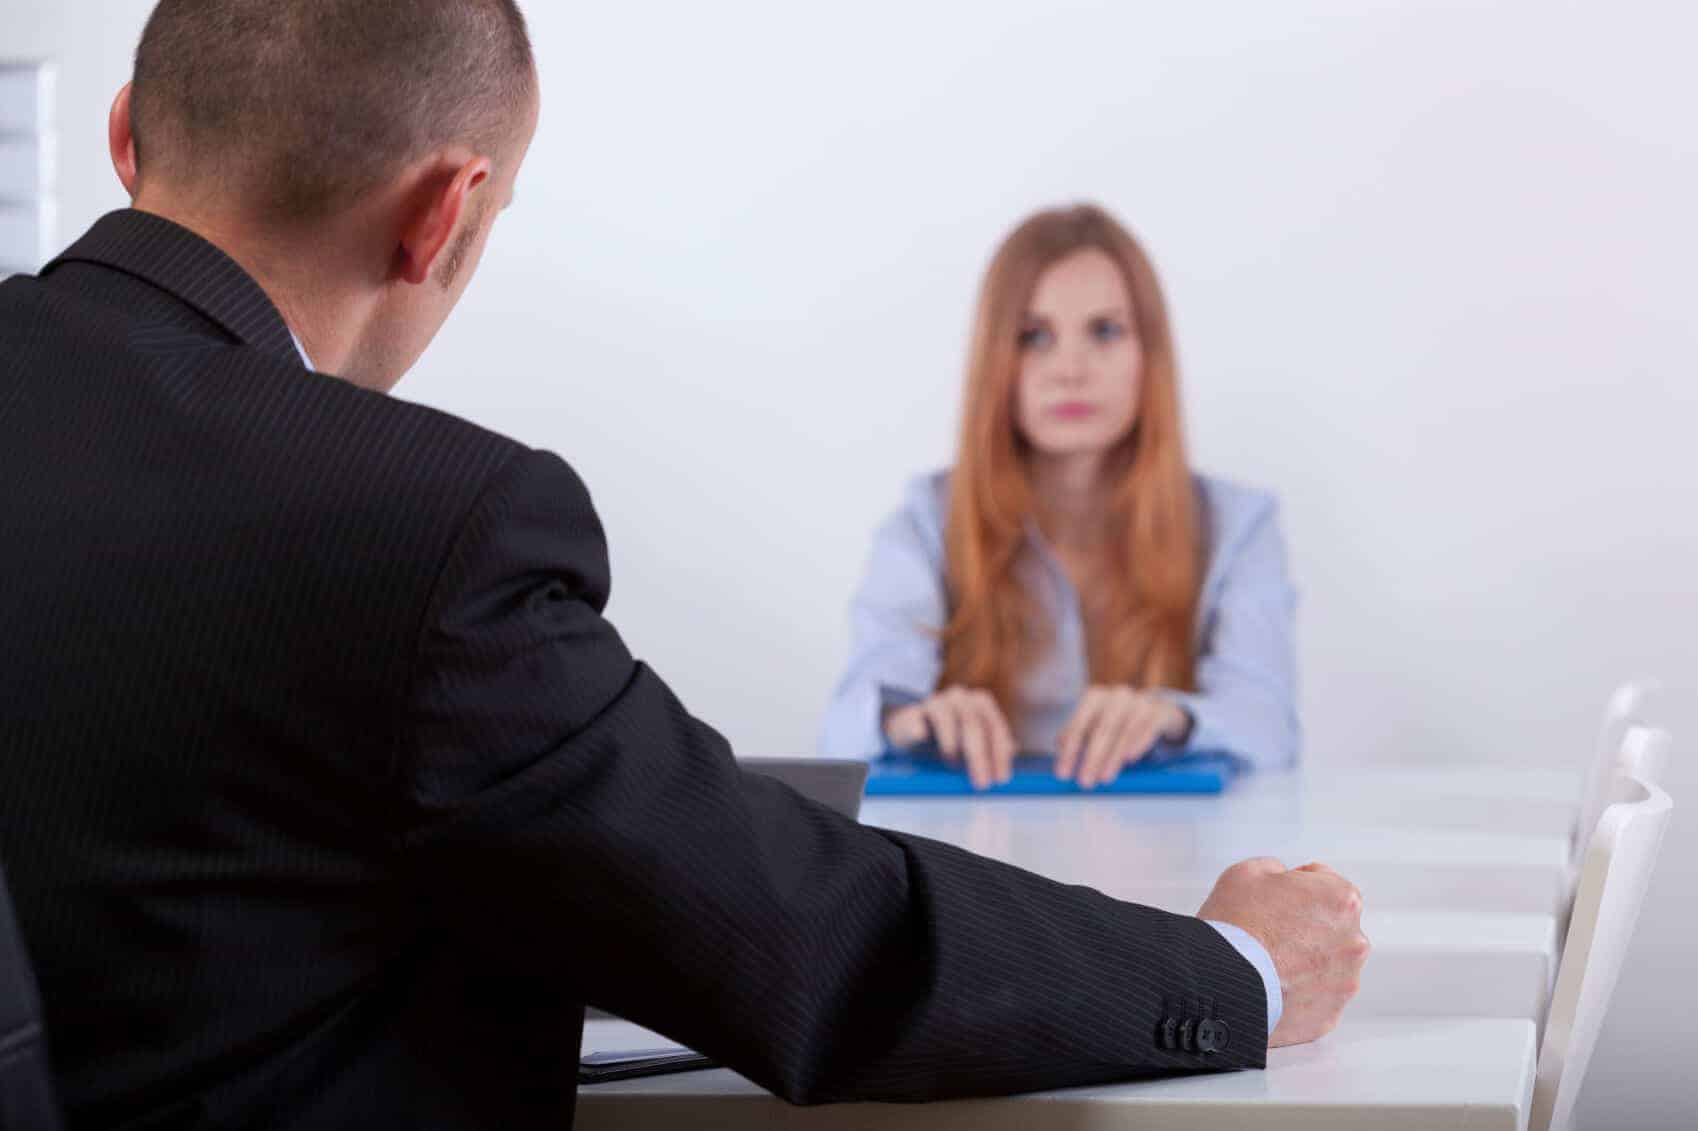 A woman with defensive body language in a job interview